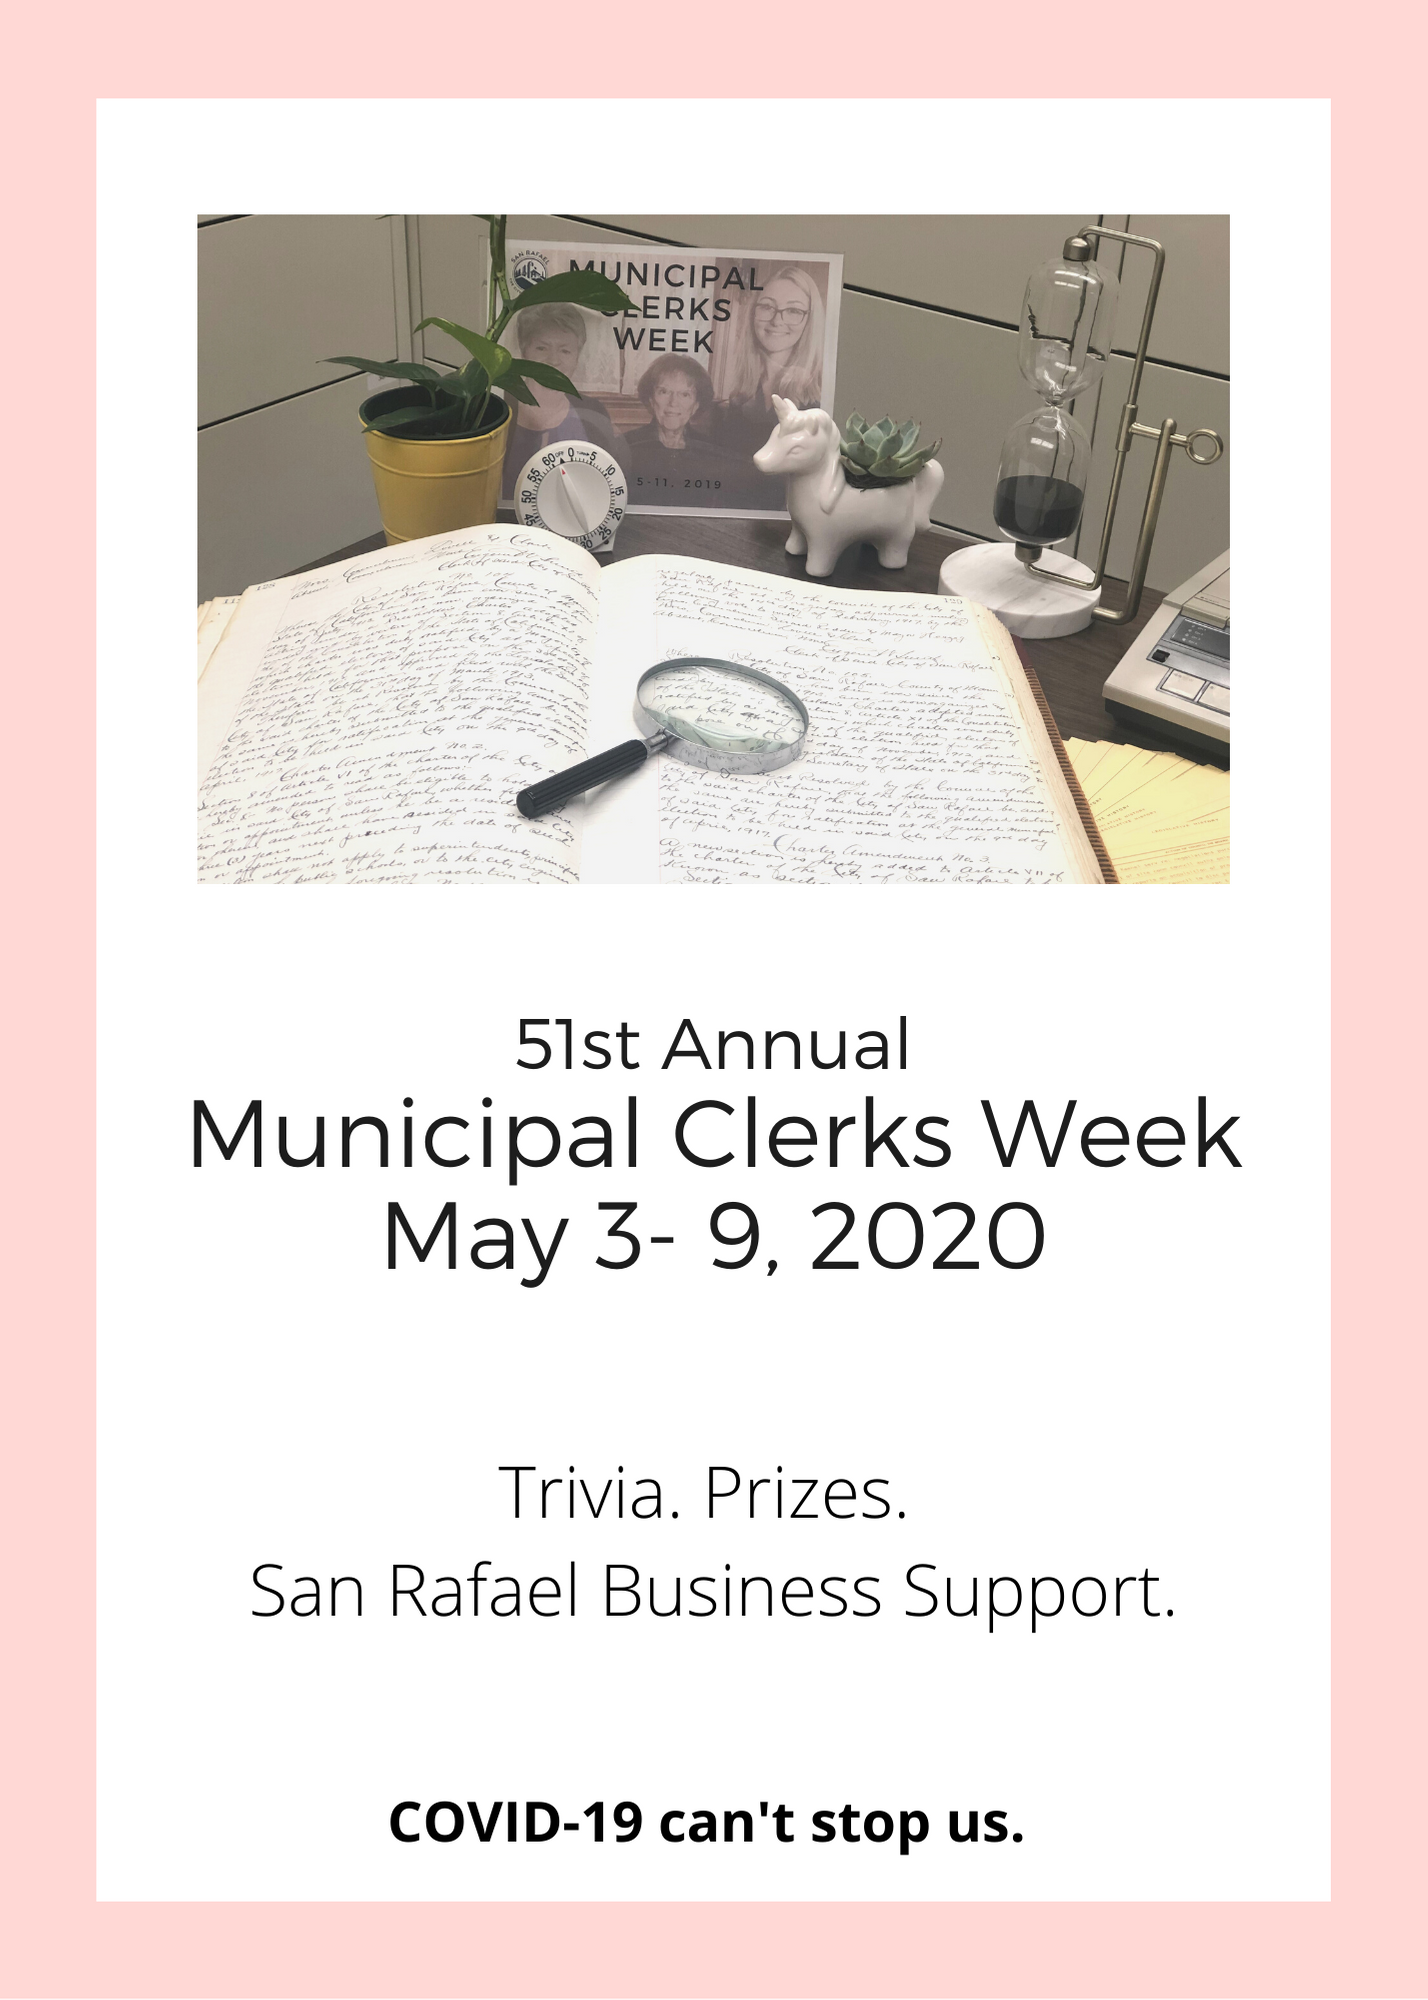 Municipal Clerks Week Flier